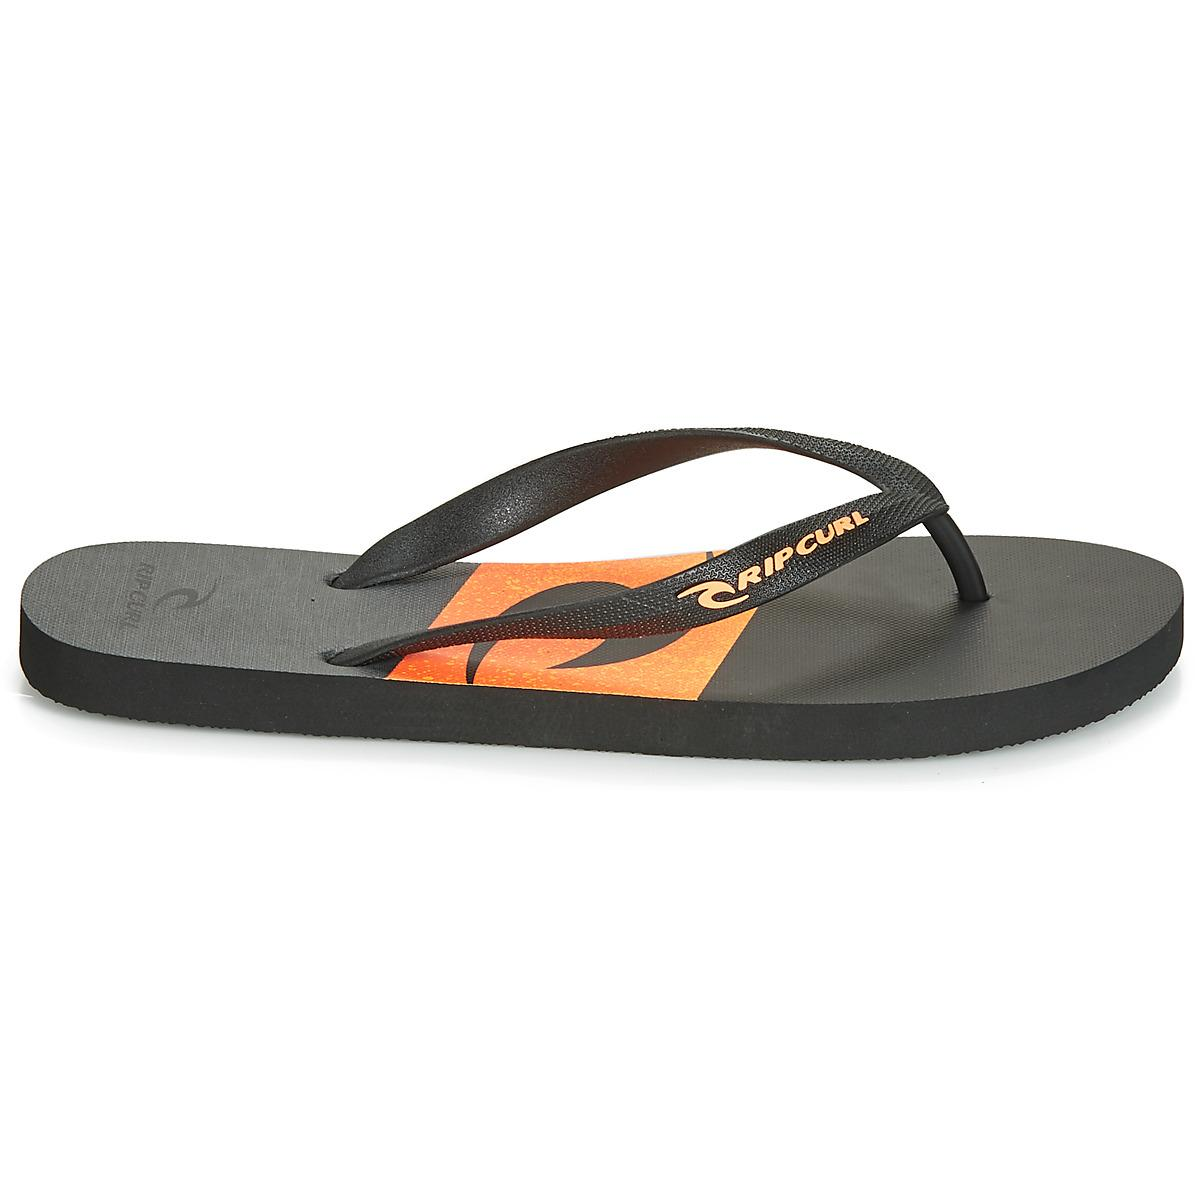 3f24dfb63d765 Rip Curl - Orange Flyer Flip Flops   Sandals (shoes) for Men - Lyst. View  fullscreen